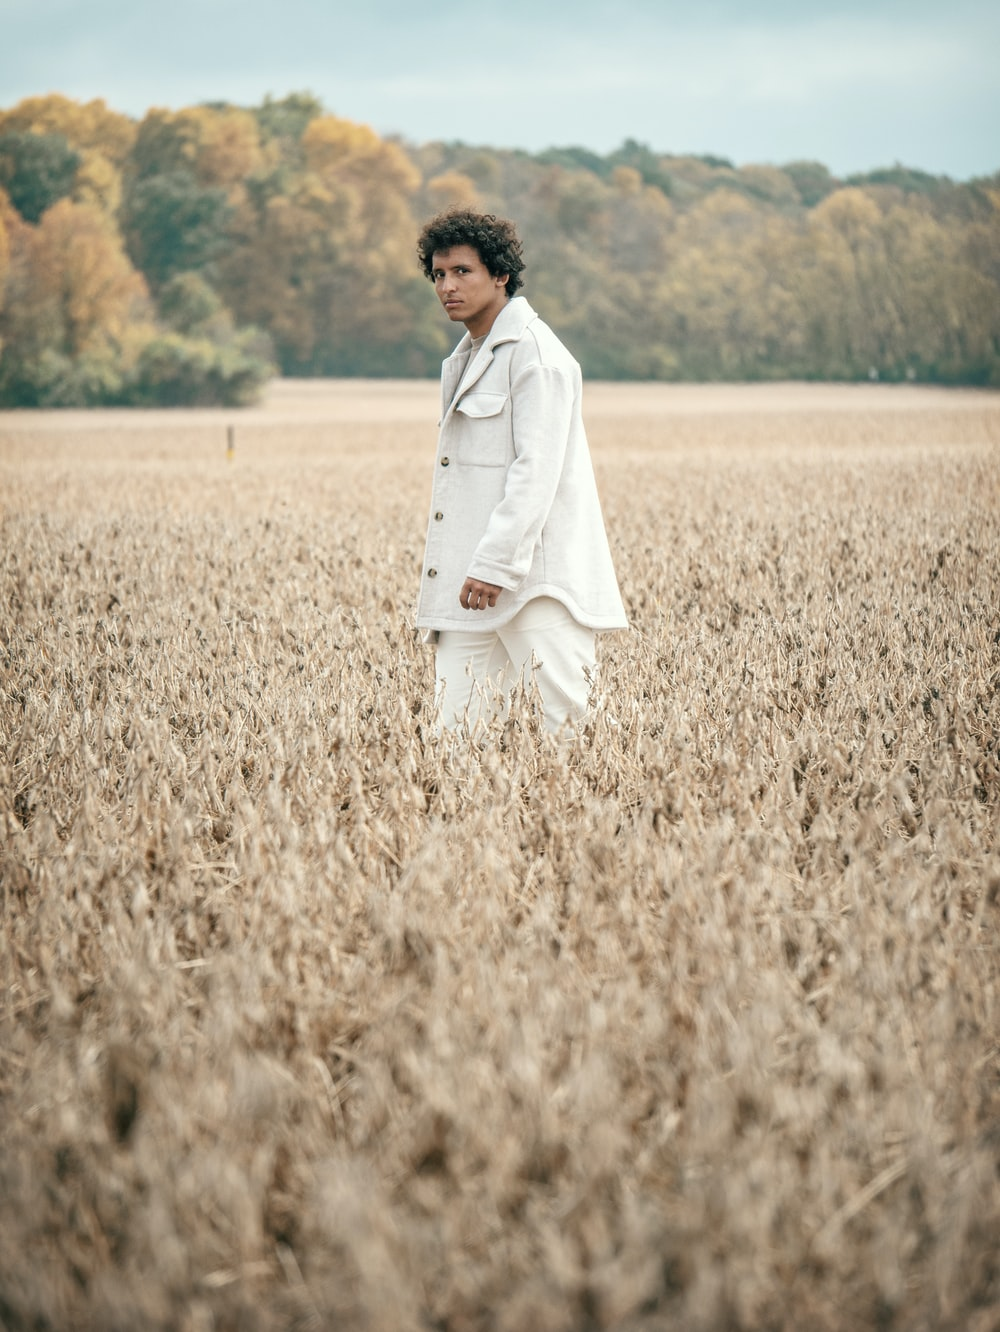 man in white suit walking on brown grass field during daytime